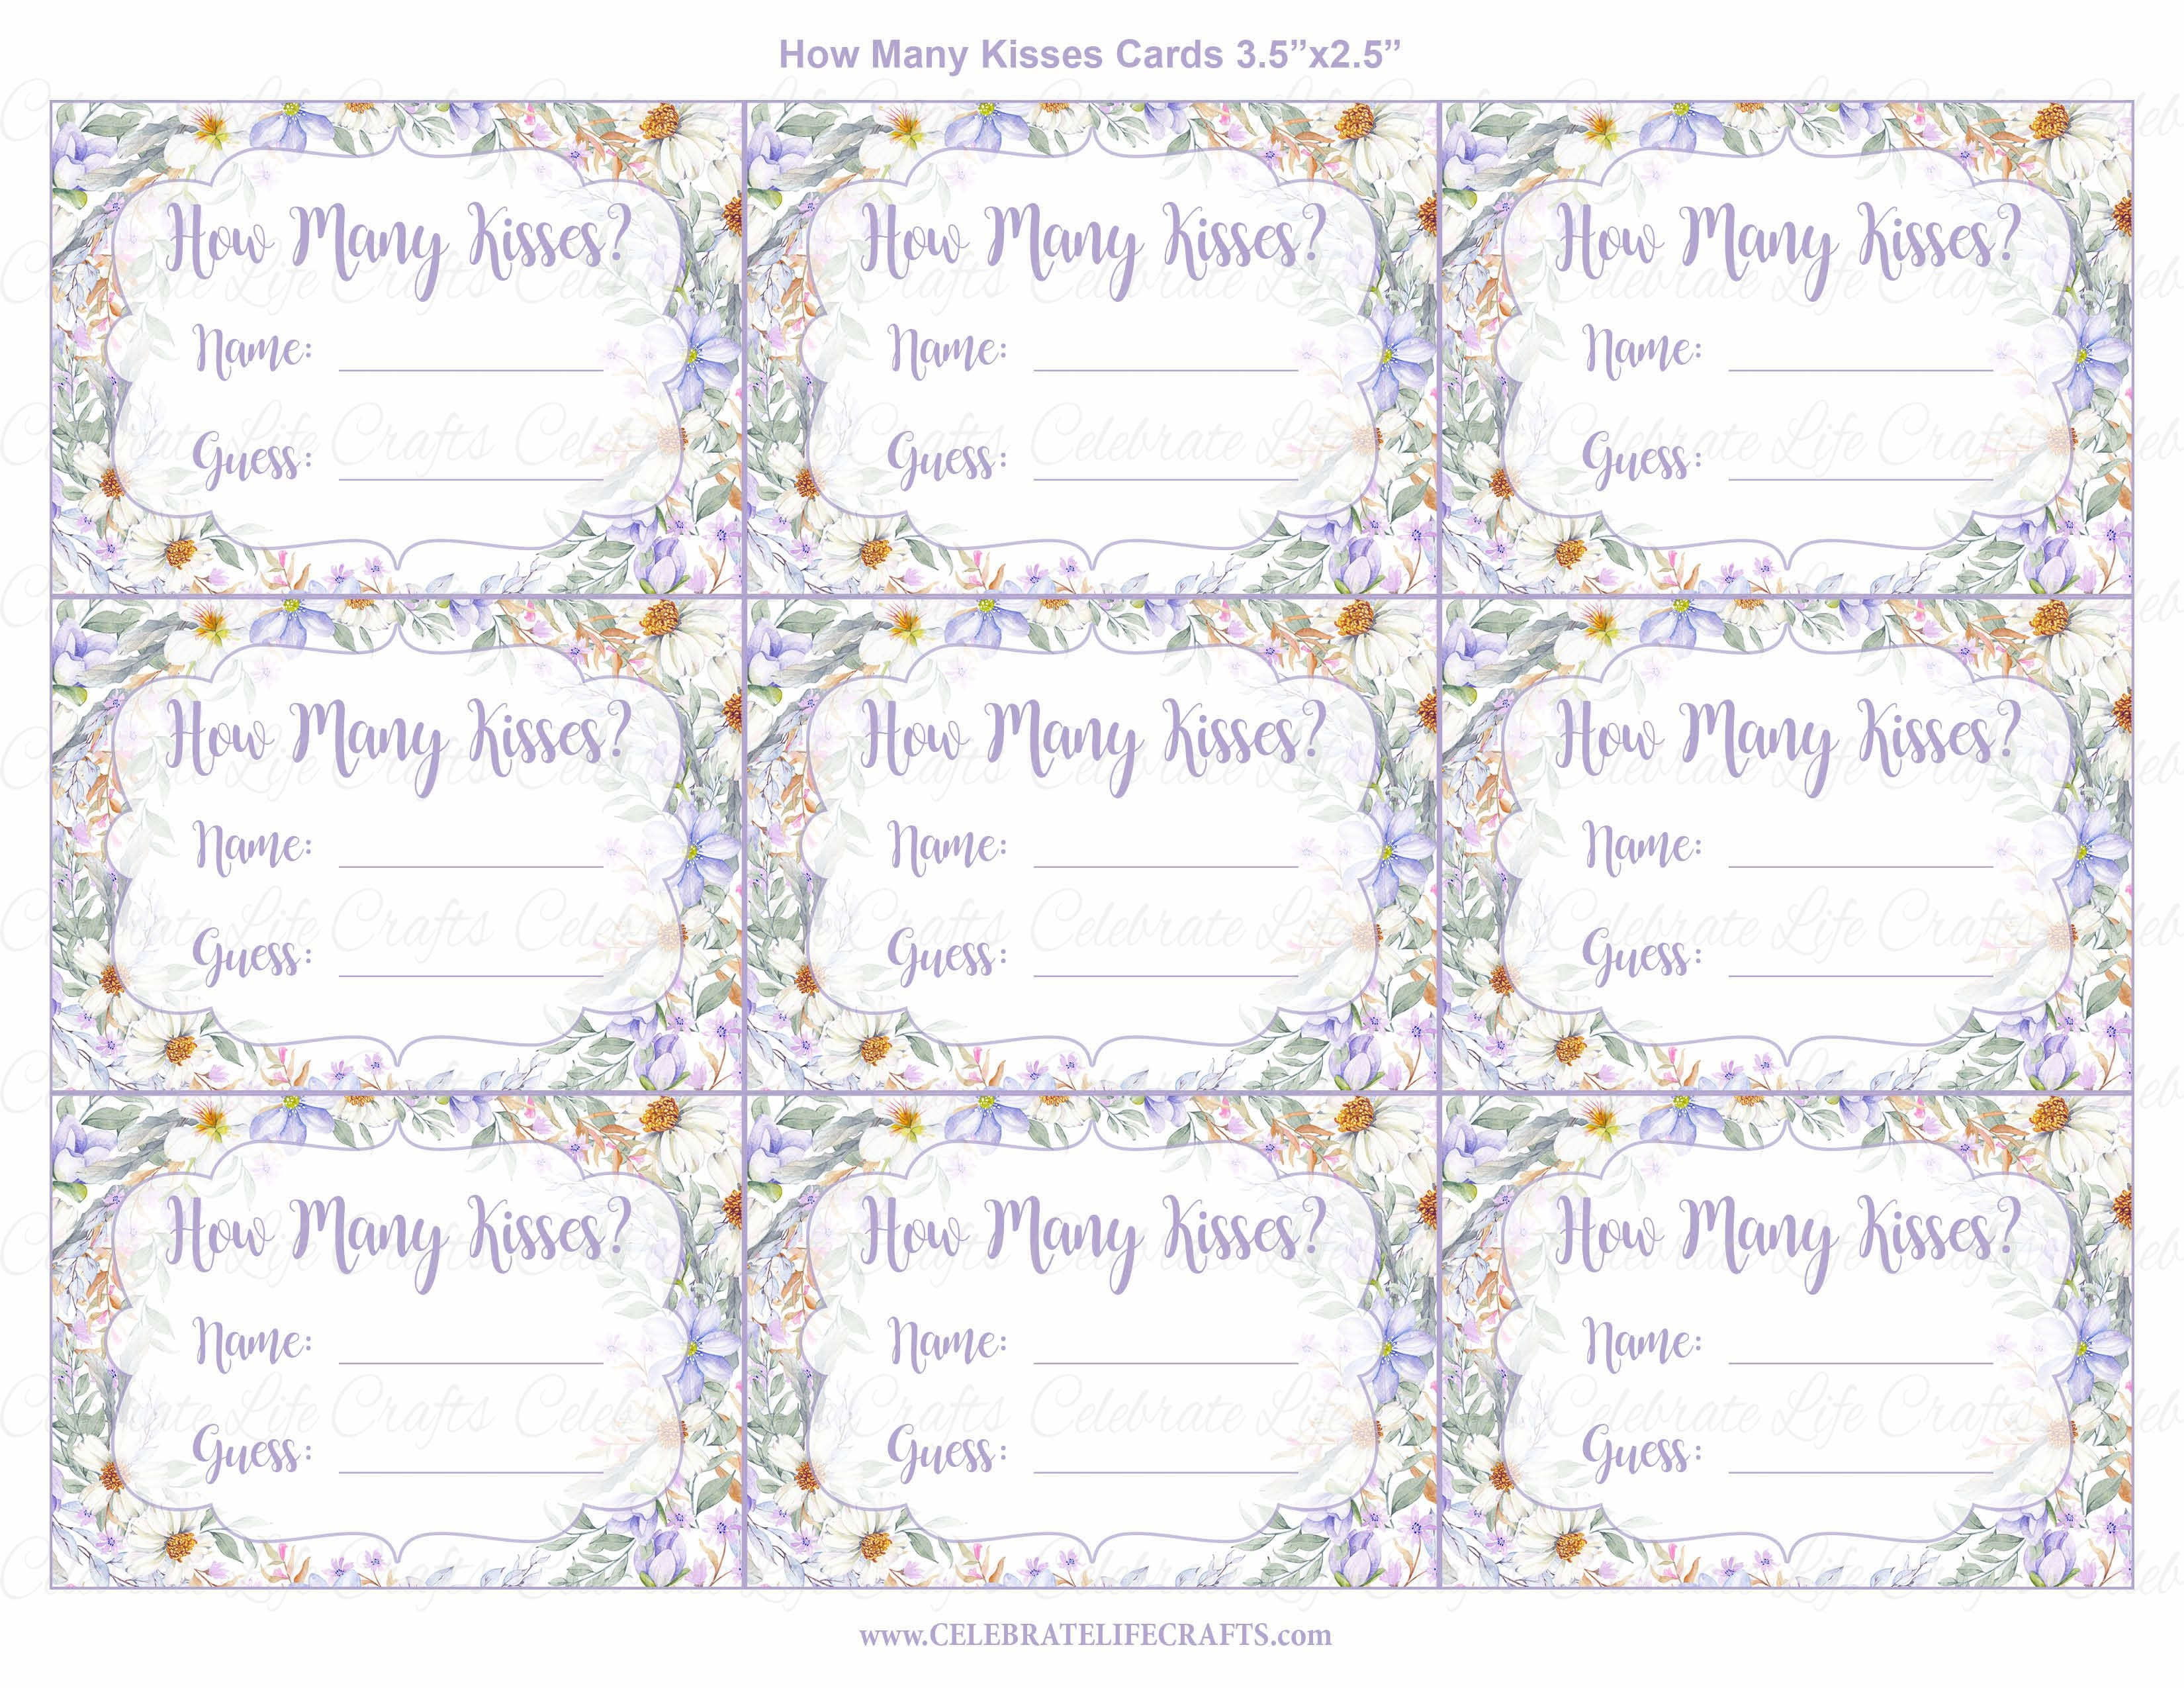 how many kisses bridal shower game sign and guessing cards printable download purple floral